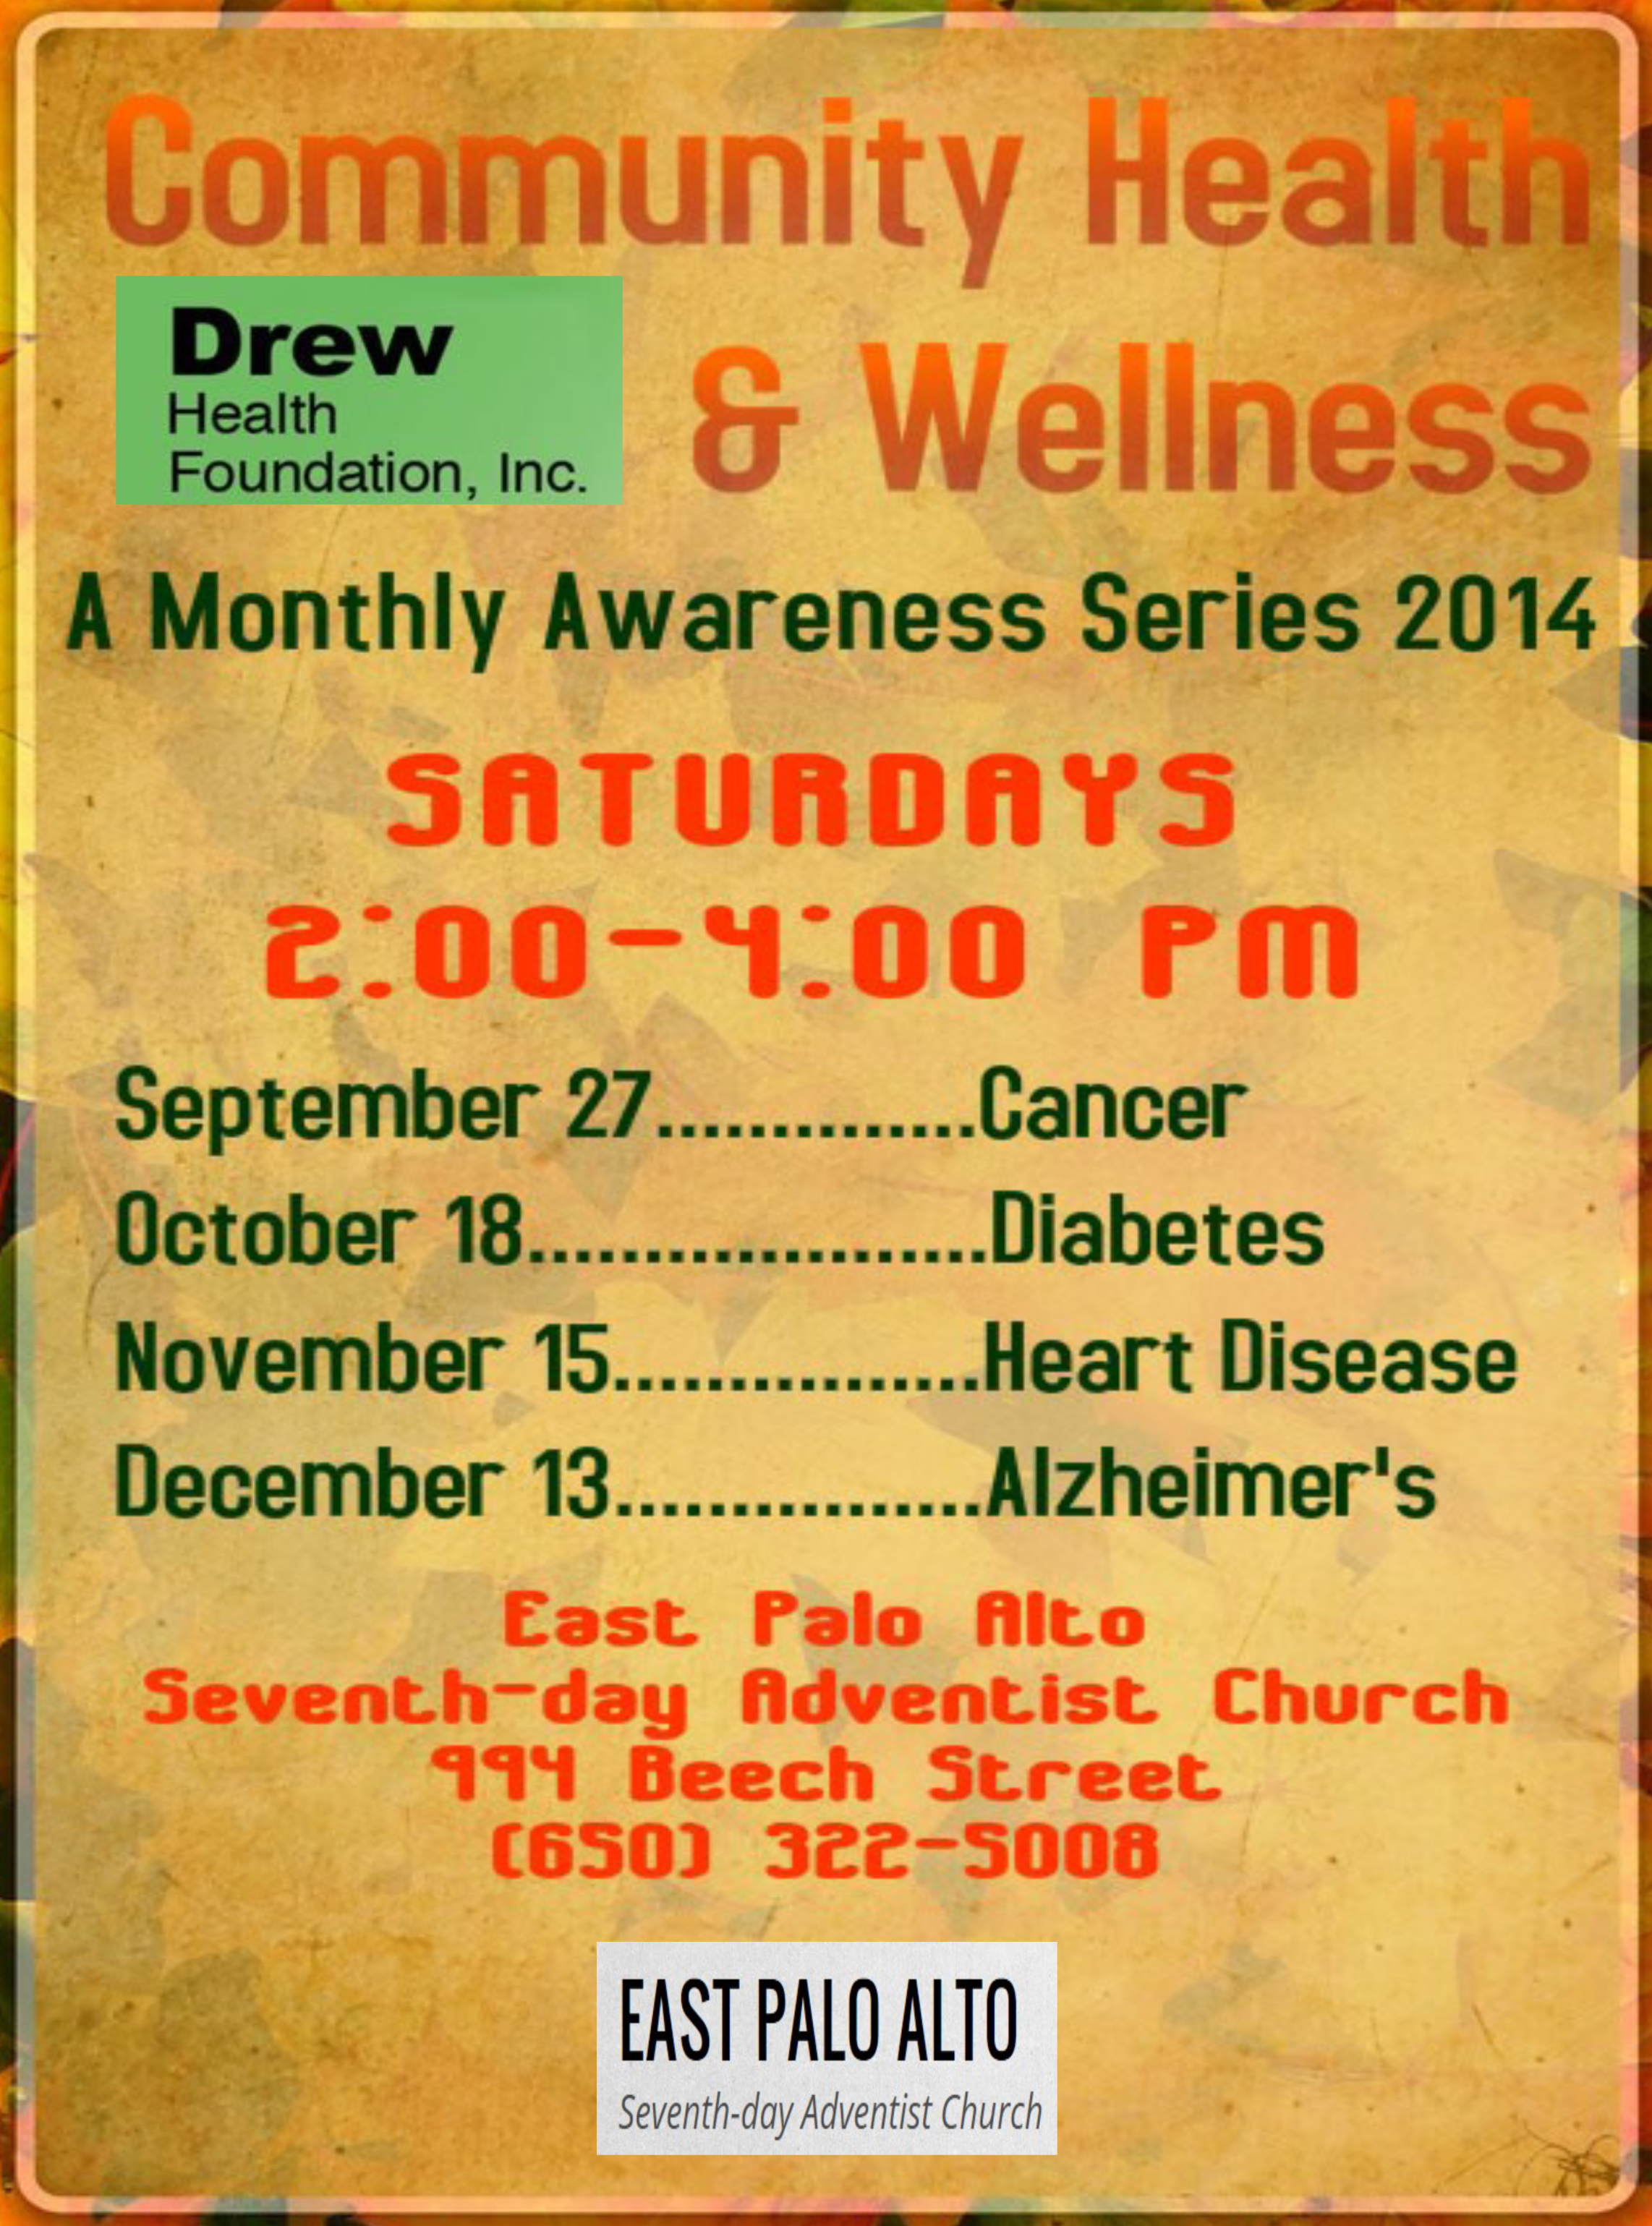 Mental Health Awareness Day - Parent Network of WNY |Wellness Day Event Flyers